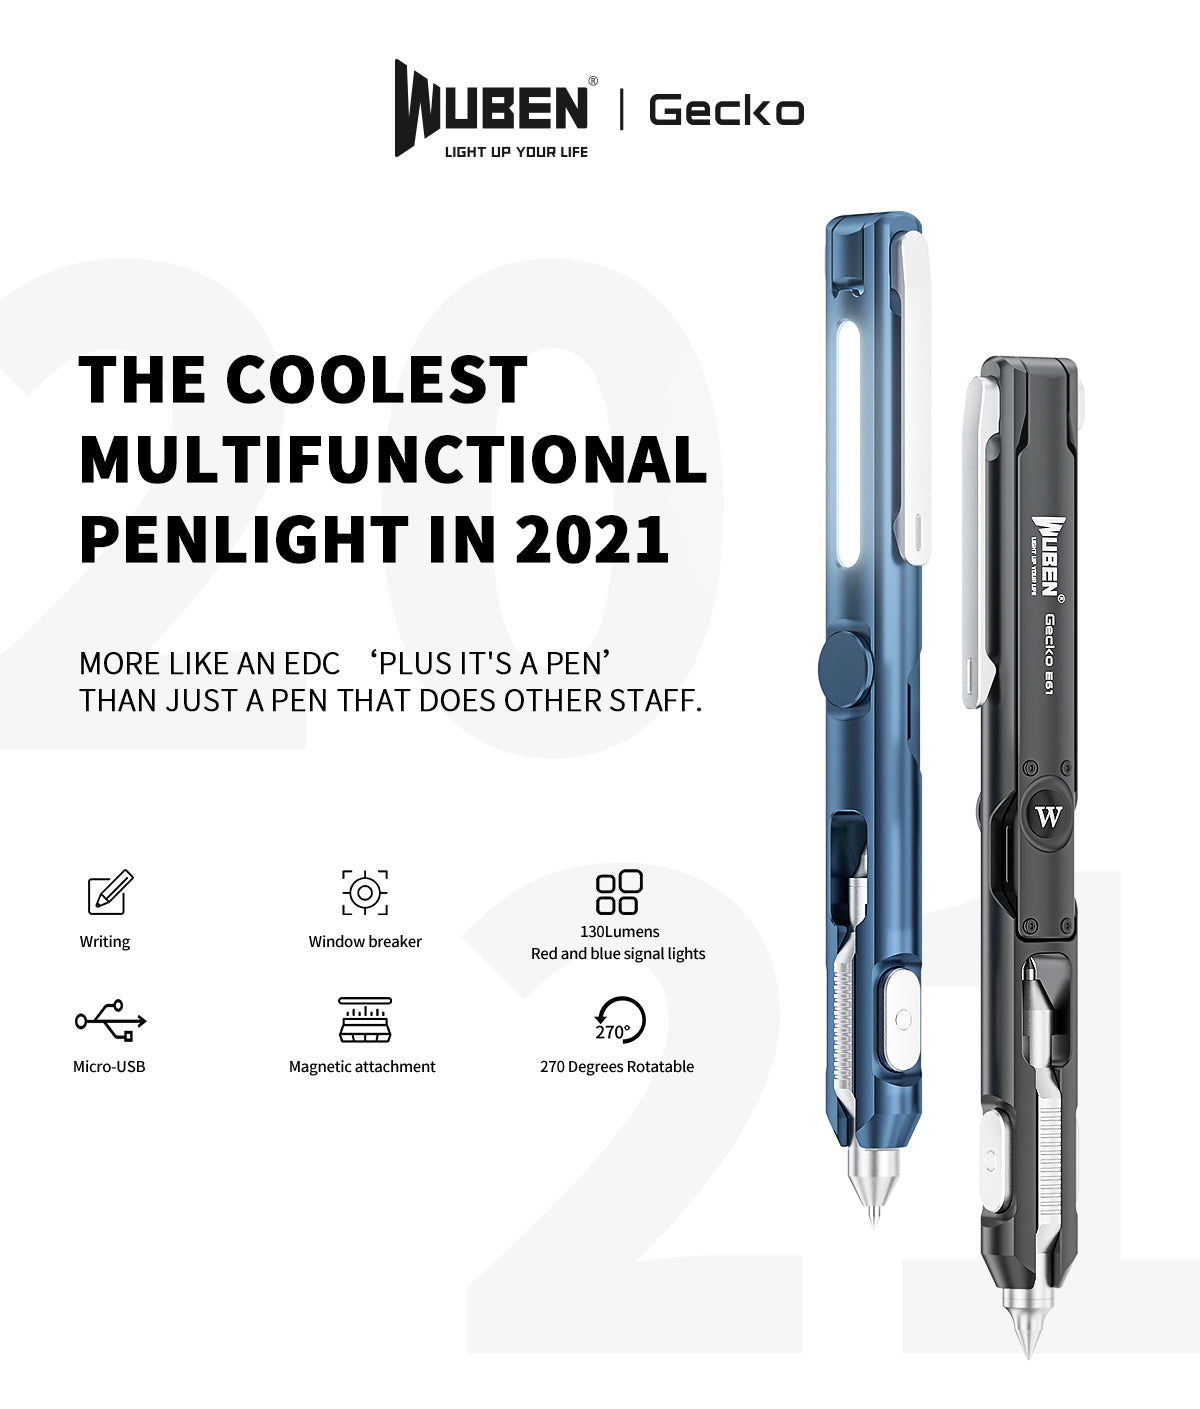 WUBEN Gecko E61 EDC Pen Rechargeable Multi-functional Cool Gadget Everyday Carry Penlight Flashlight 2021 Latest EDC Item